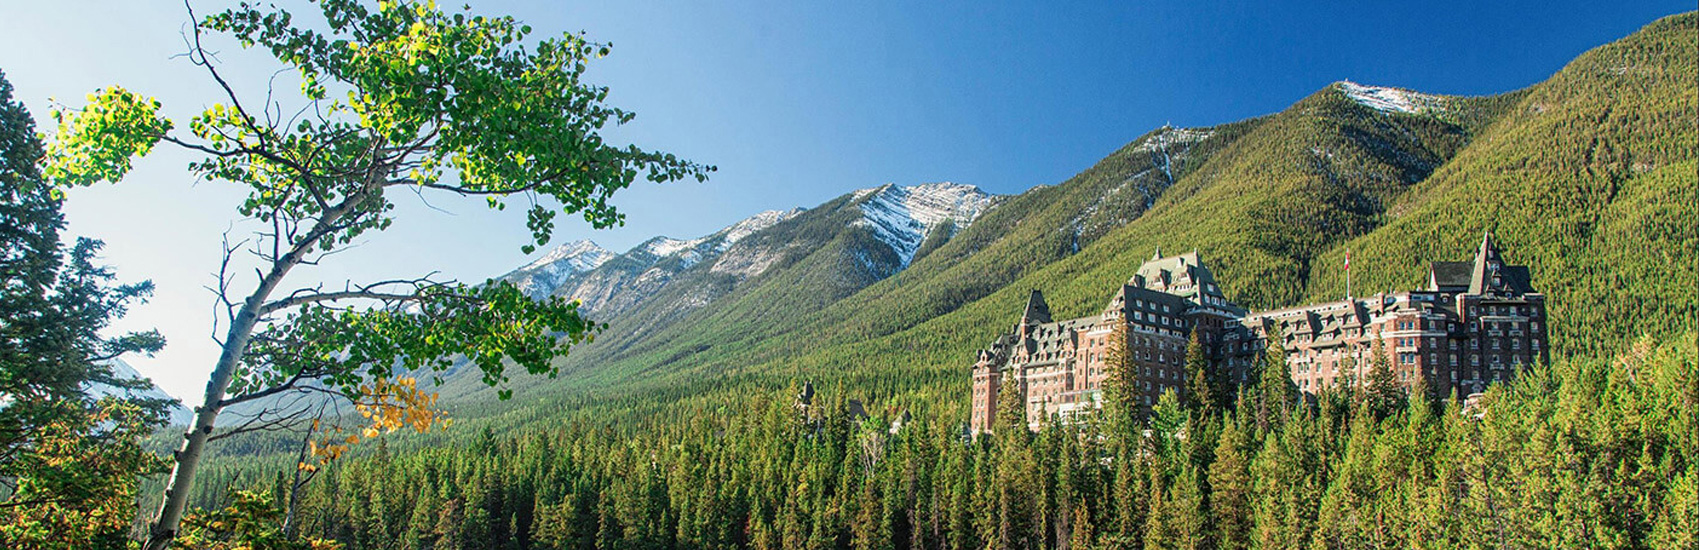 Fairmont Hotels in Canada